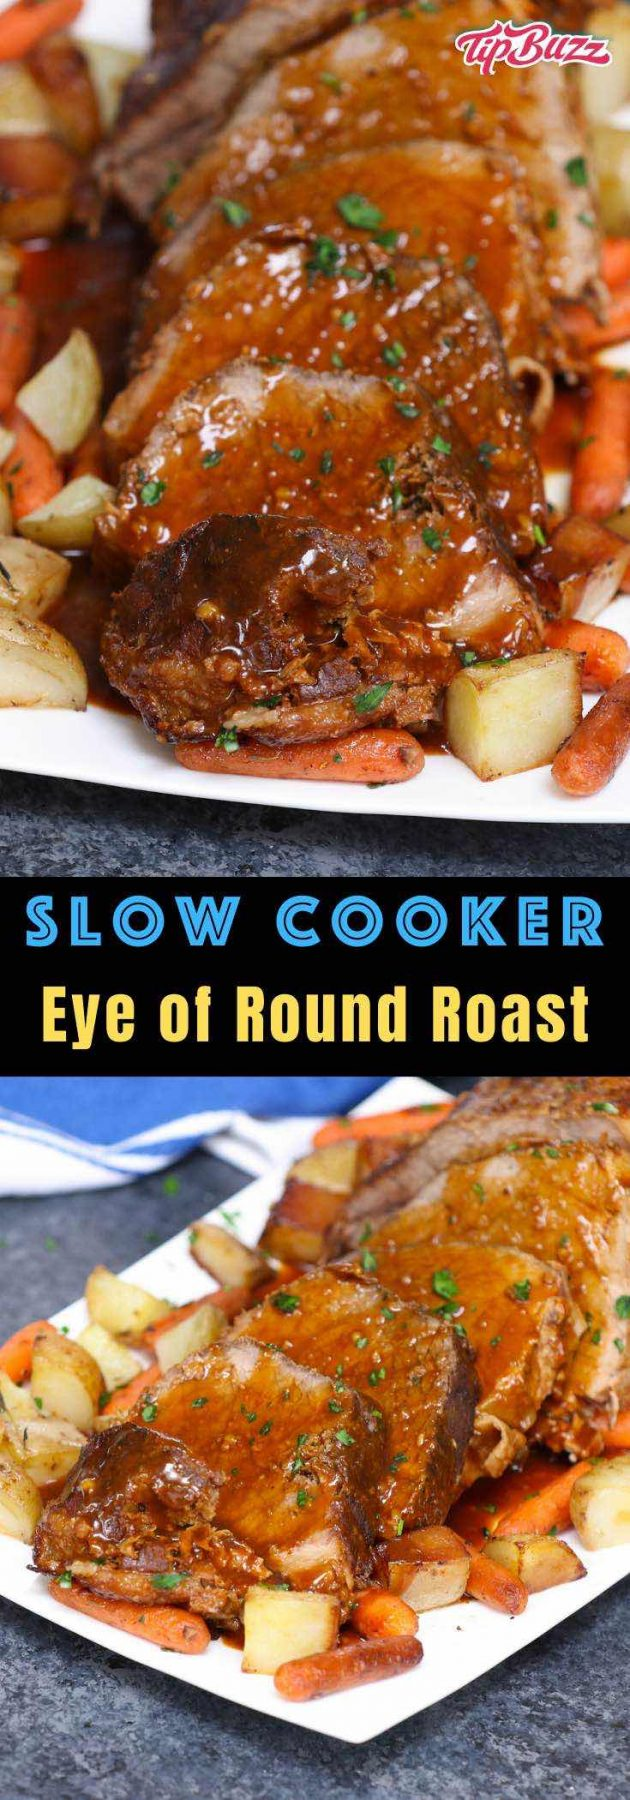 An Eye of Round Roast is a economical cut of beef that, with careful preparation, makes a delicious dinner. Learn how to cook eye of round successfully in the crock pot or oven. #EyeofRoundRoast #EyeOfRound